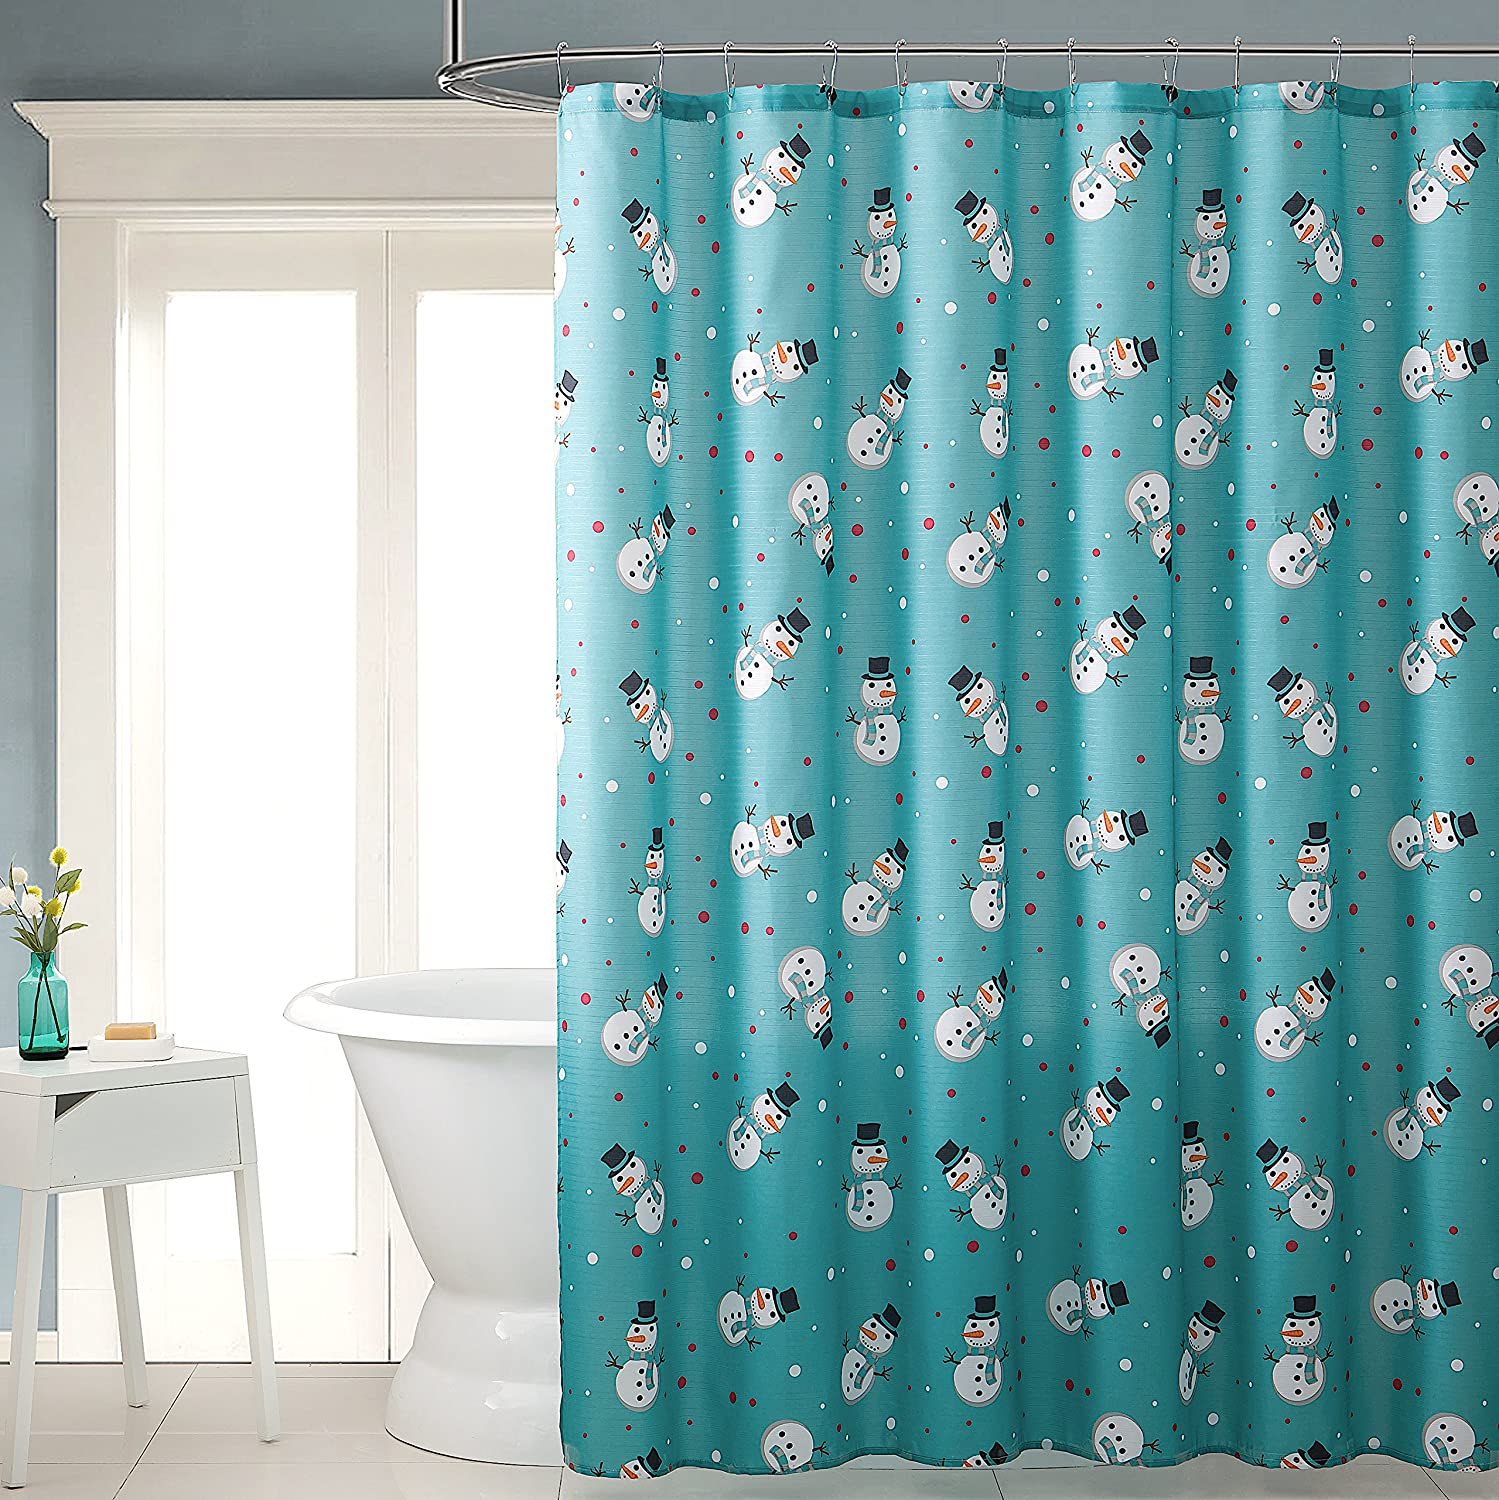 Amazon.com: Holiday Winter Fabric Shower Curtain: Snowman Design ...